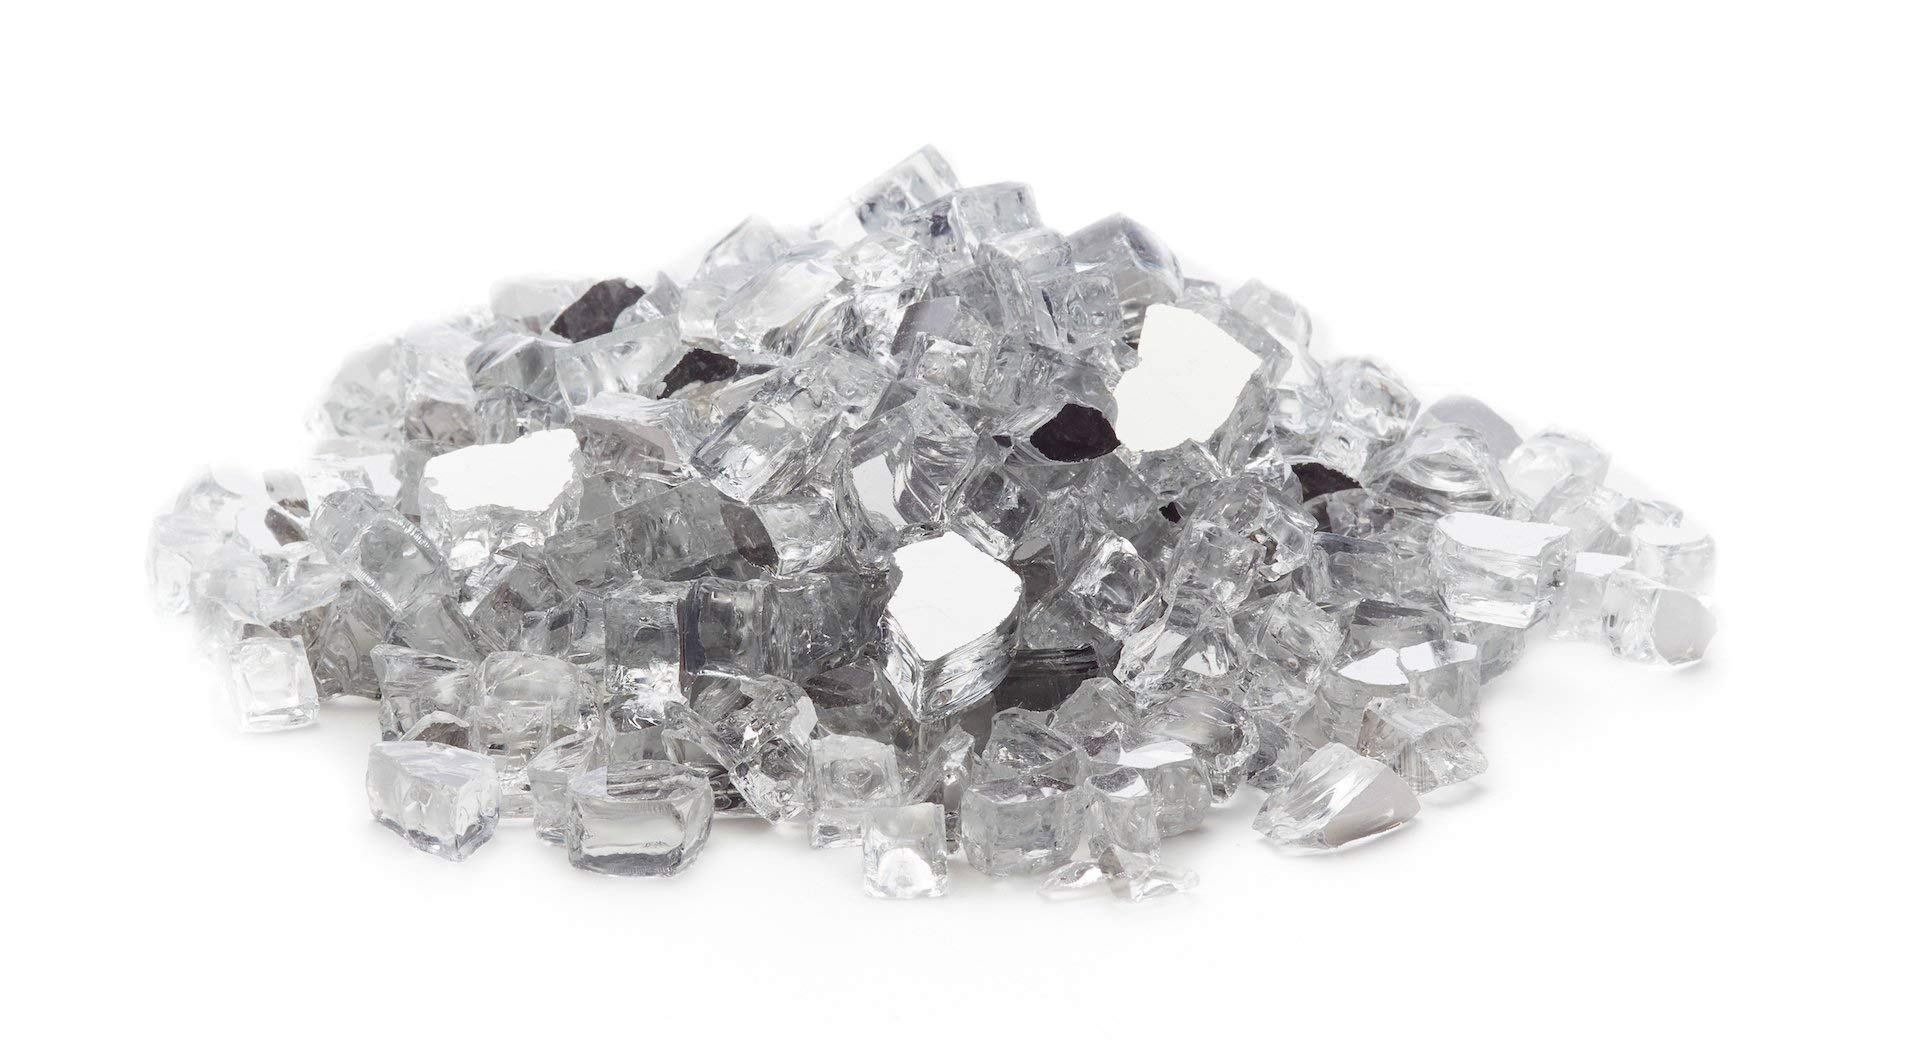 Exotic Fire Glass - Silver Reflective Fire Glass 1/2 Inch - 25lb. Bag (Renewed) by Exotic Fire Glass